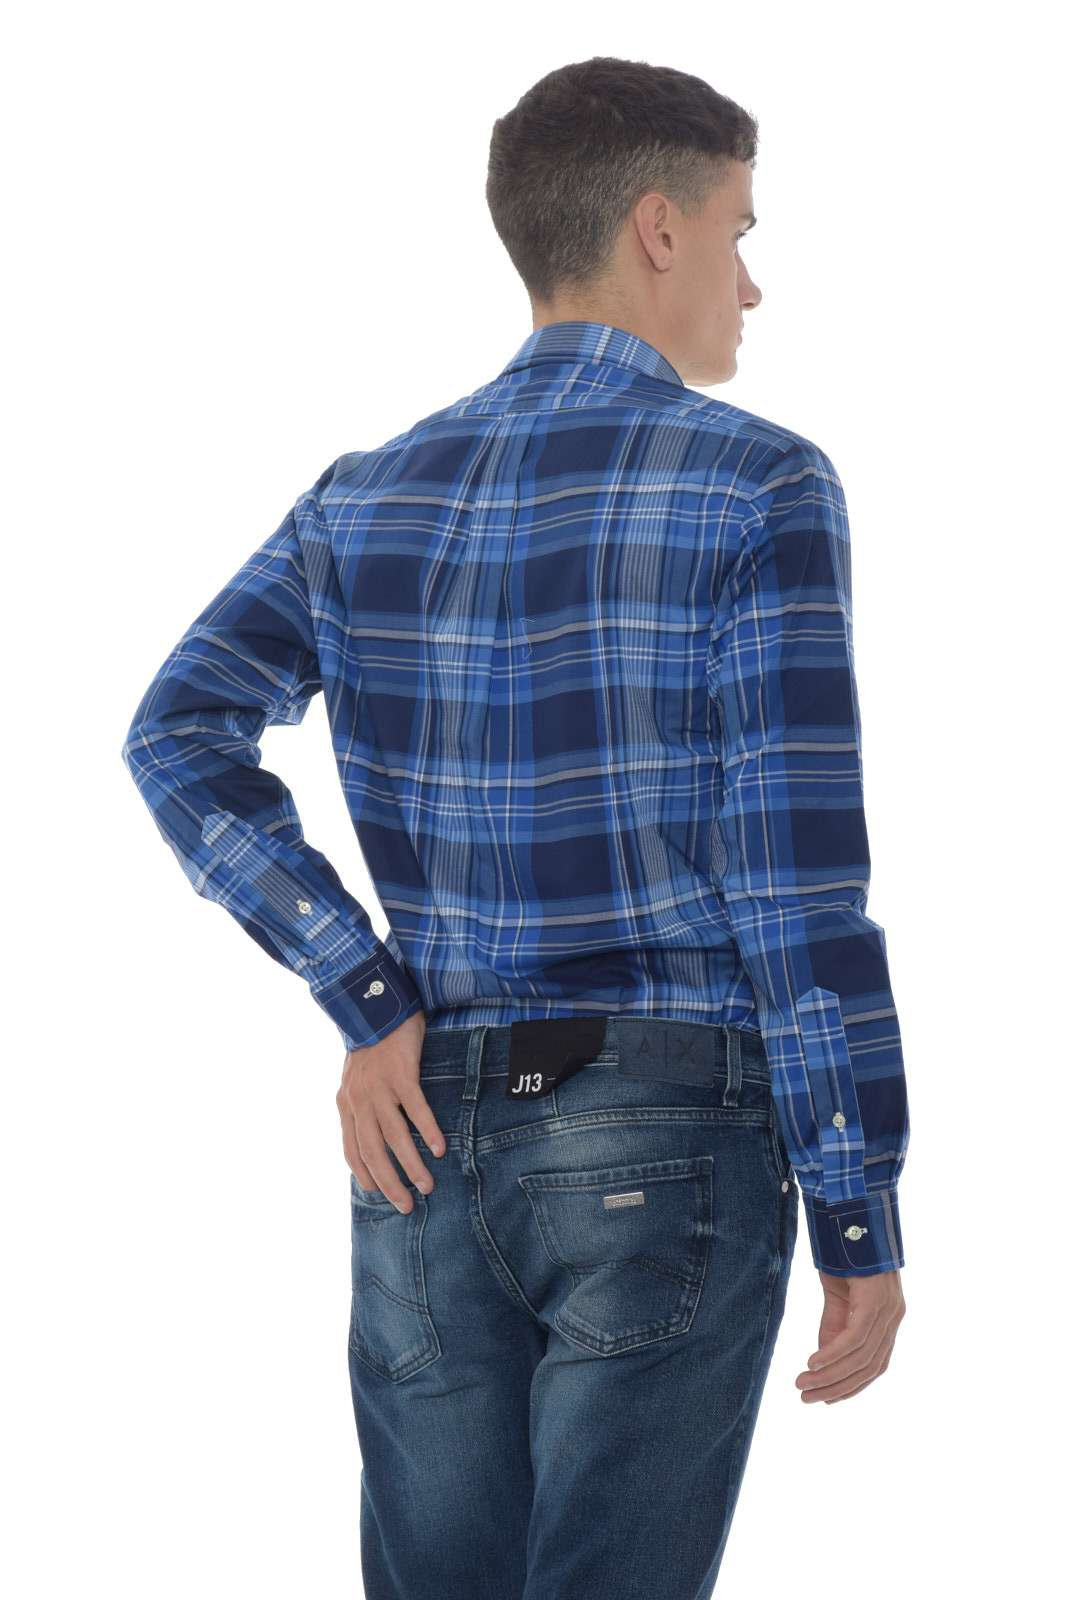 https://www.parmax.com/media/catalog/product/a/i/AI-outlet_parmax-camicia-uomo-Ralph-Lauren-710767330001-C.jpg